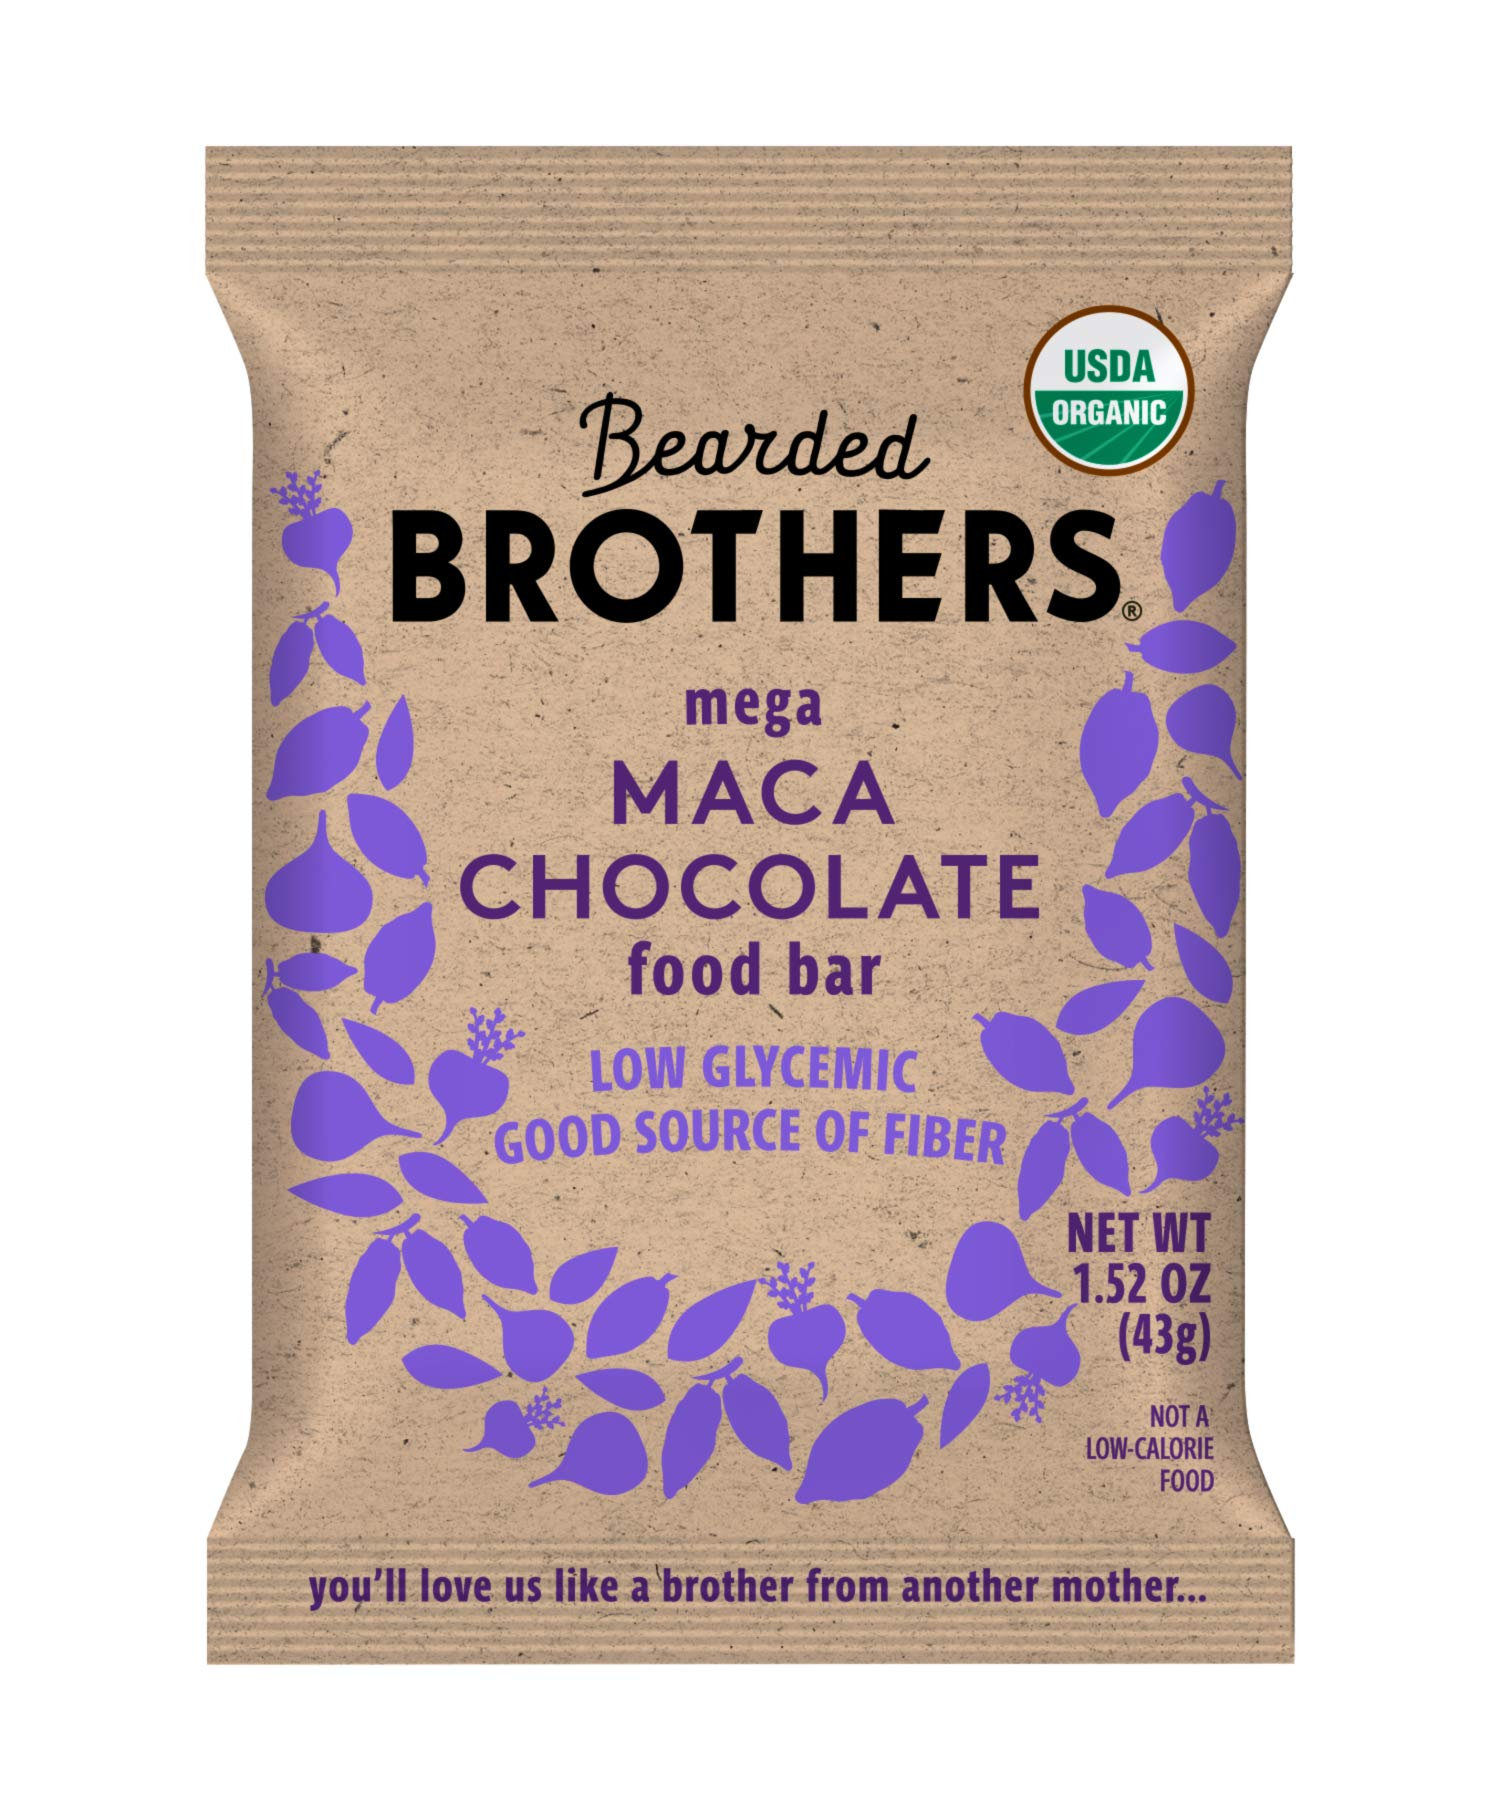 Bearded Brothers Vegan Organic Energy Bar   Gluten Free, Paleo and Whole 30   Soy Free, Non GMO, Low Glycemic, Packed with Protein, Fiber + Whole Foods   Maca Chocolate   12 Pack